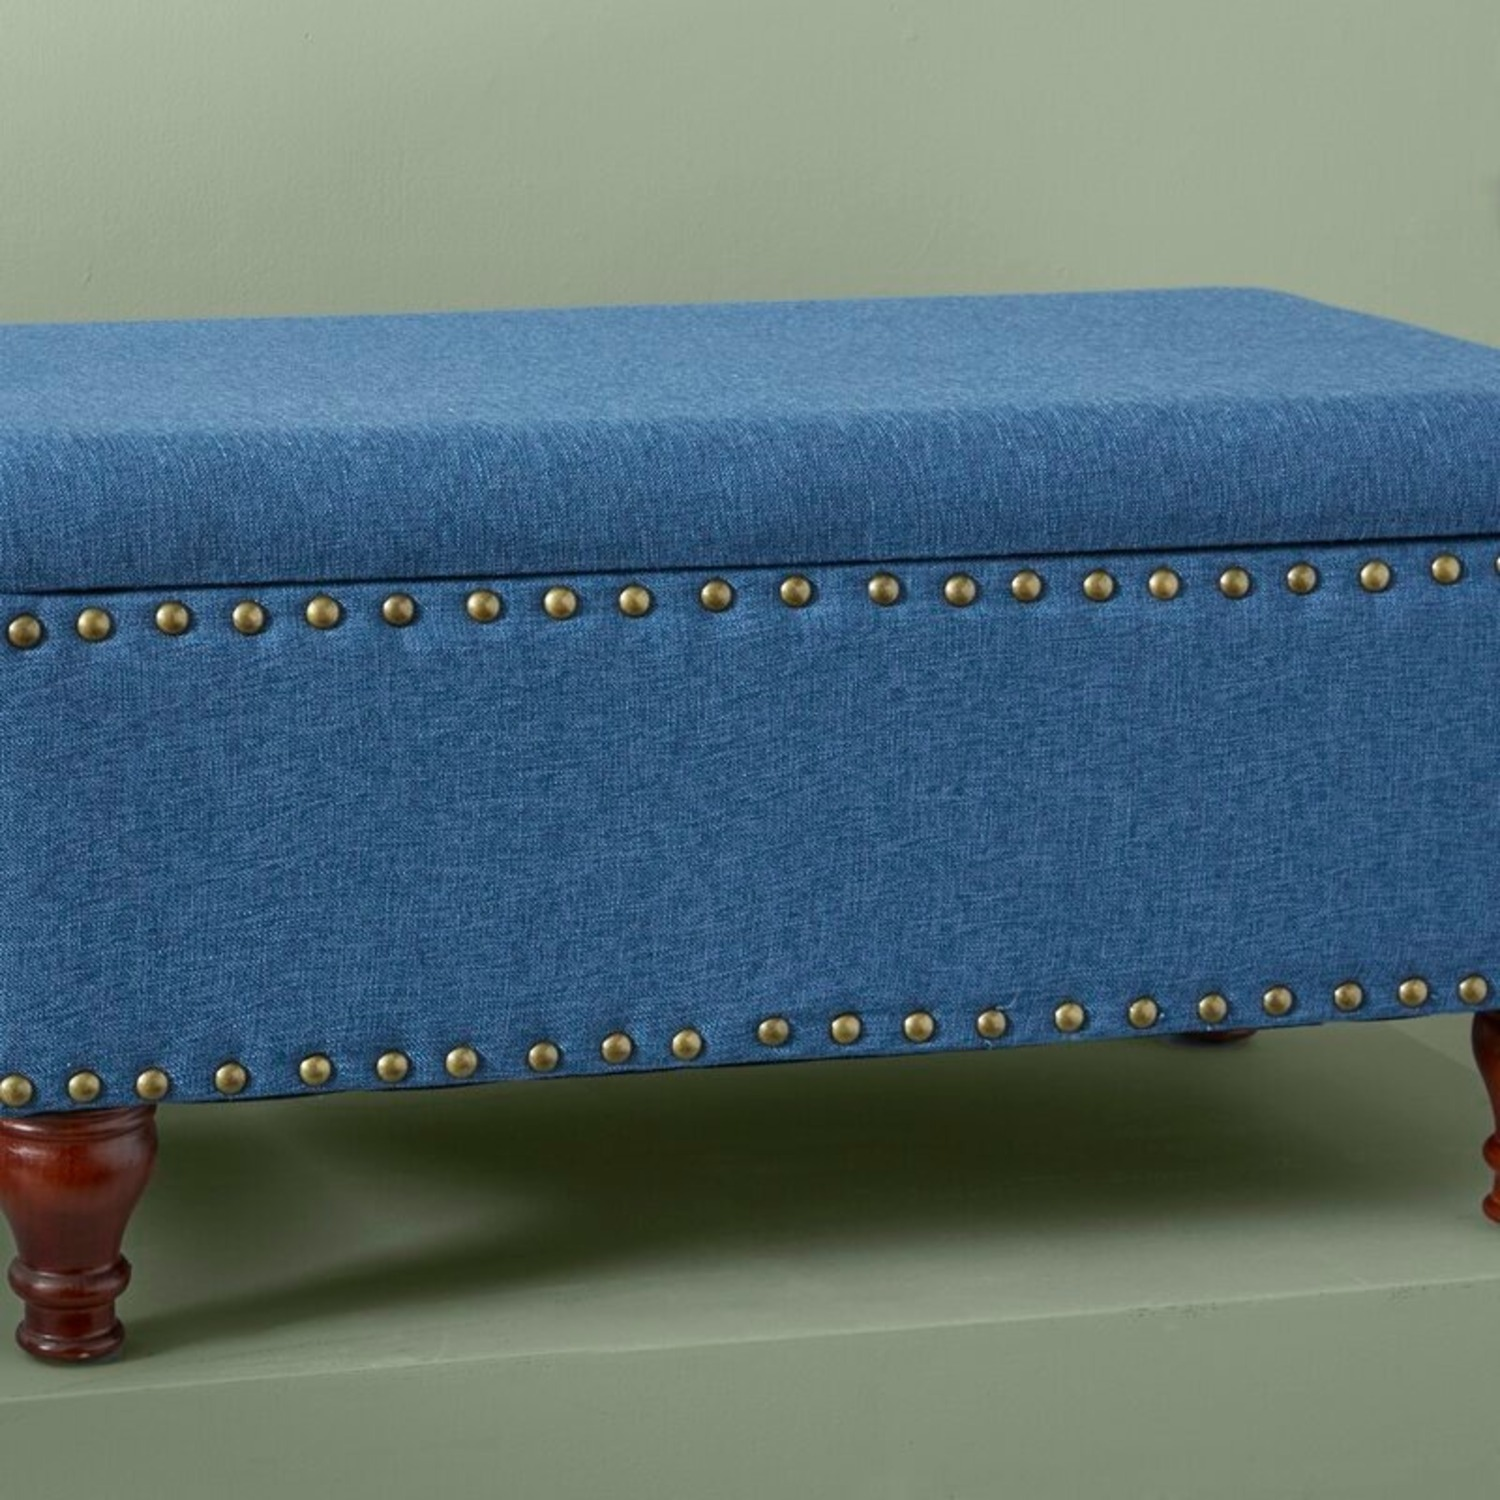 Wayfair Oakford Upholstered Flip Top Storage Bench - image-4